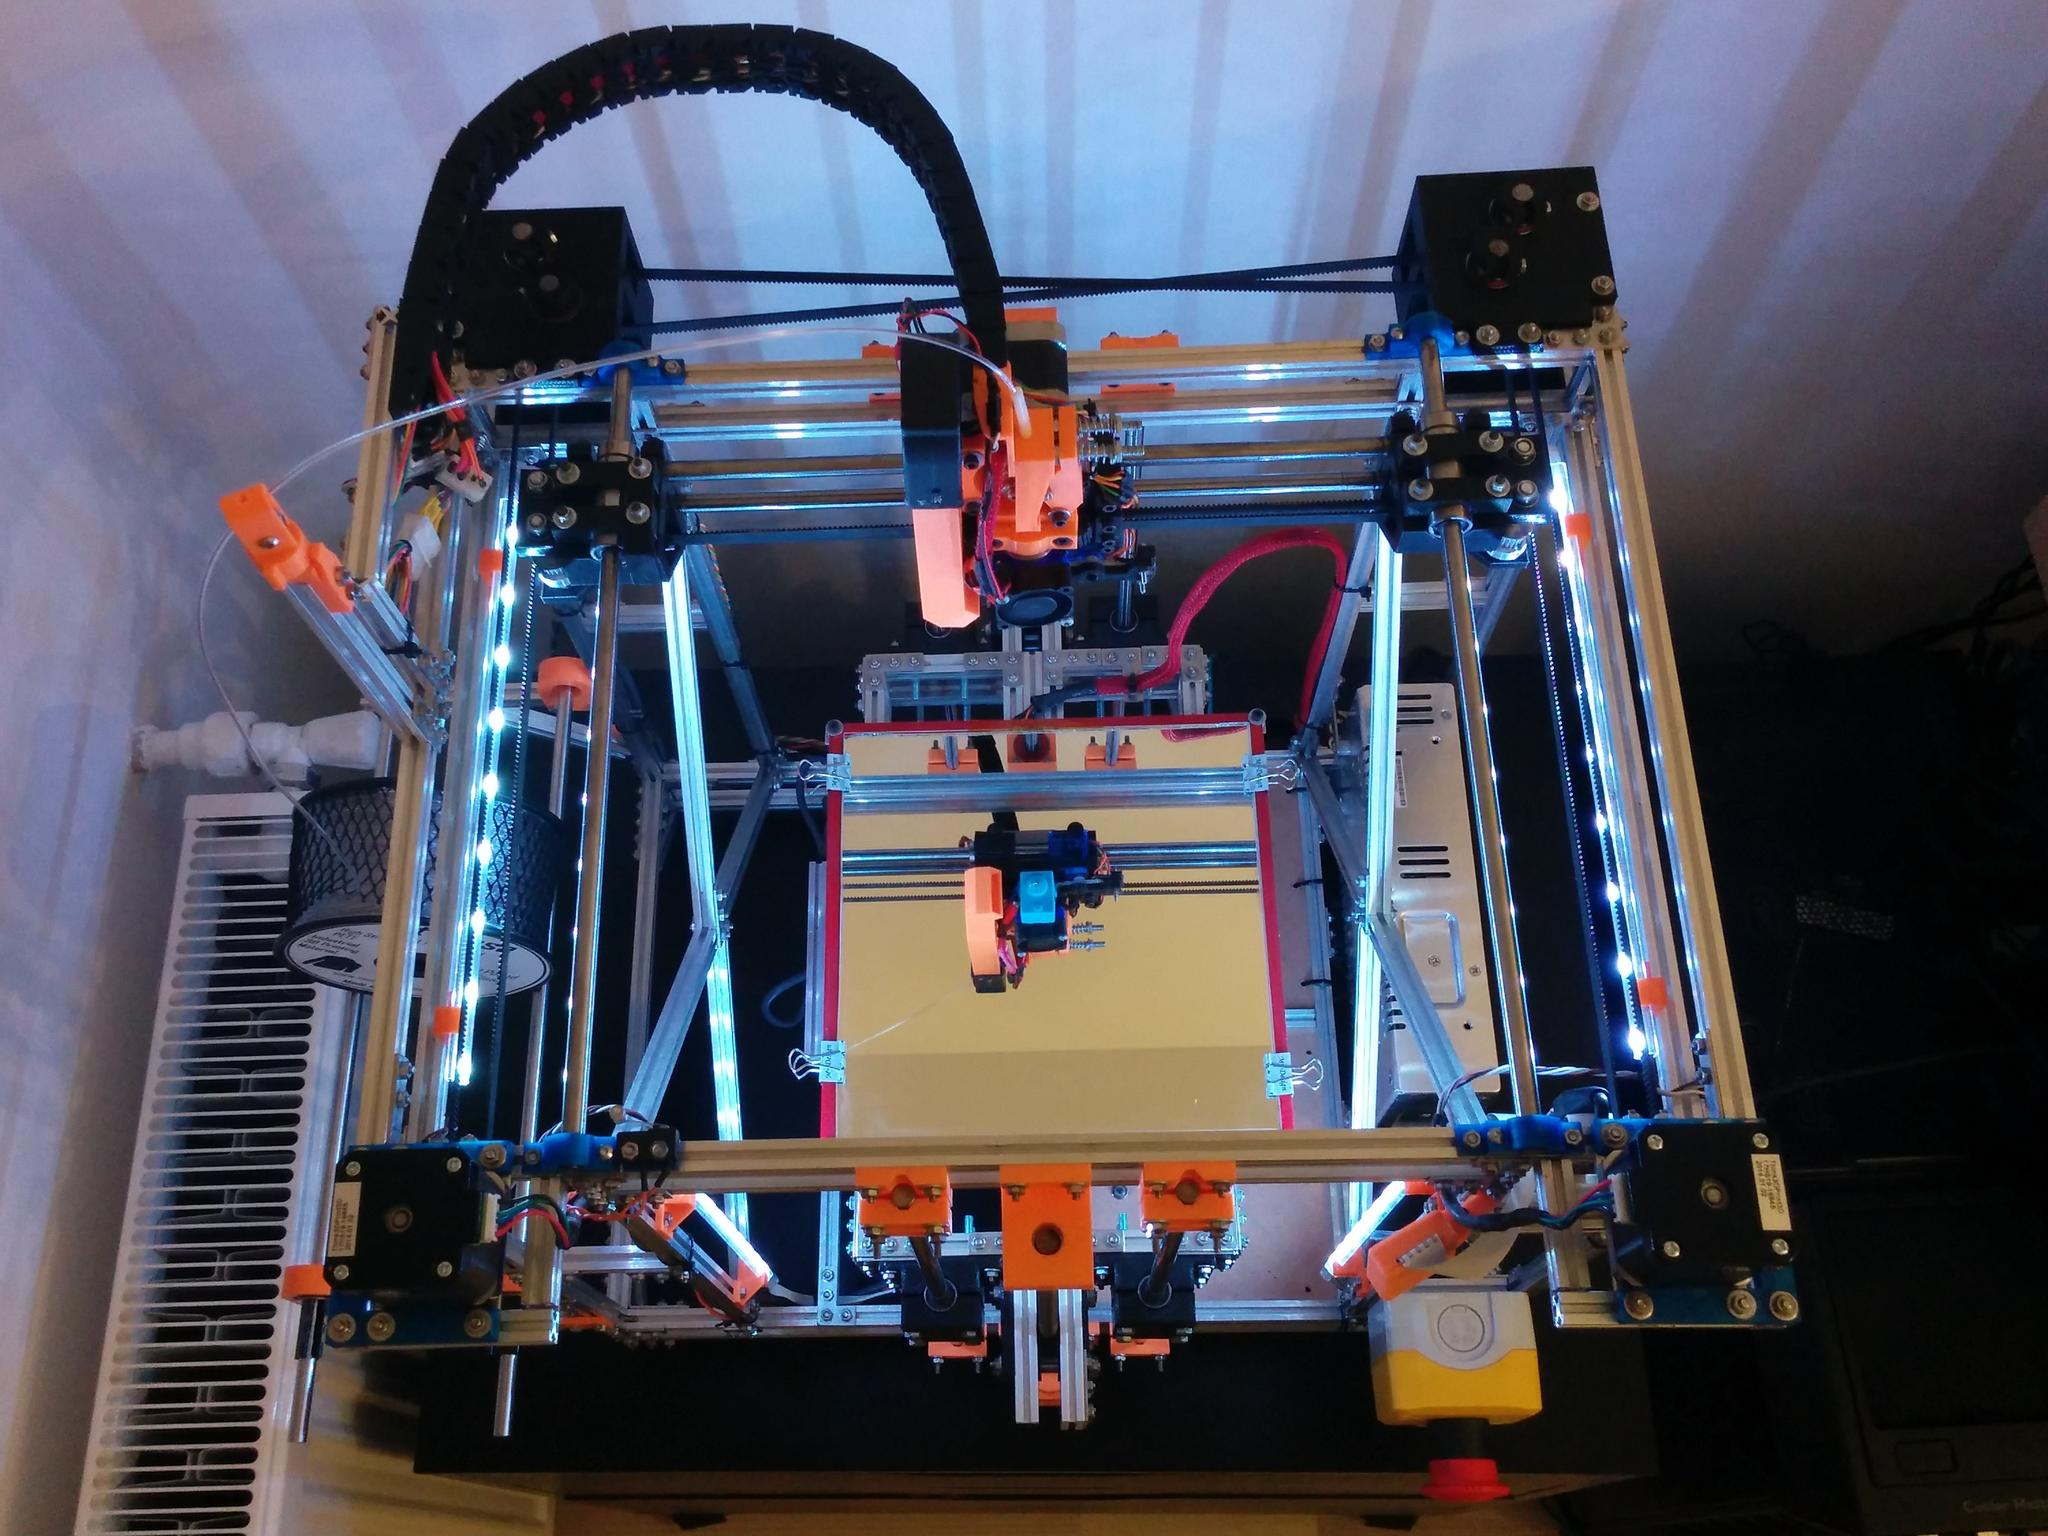 Tim's MakerBeam 3D printer, 1-7